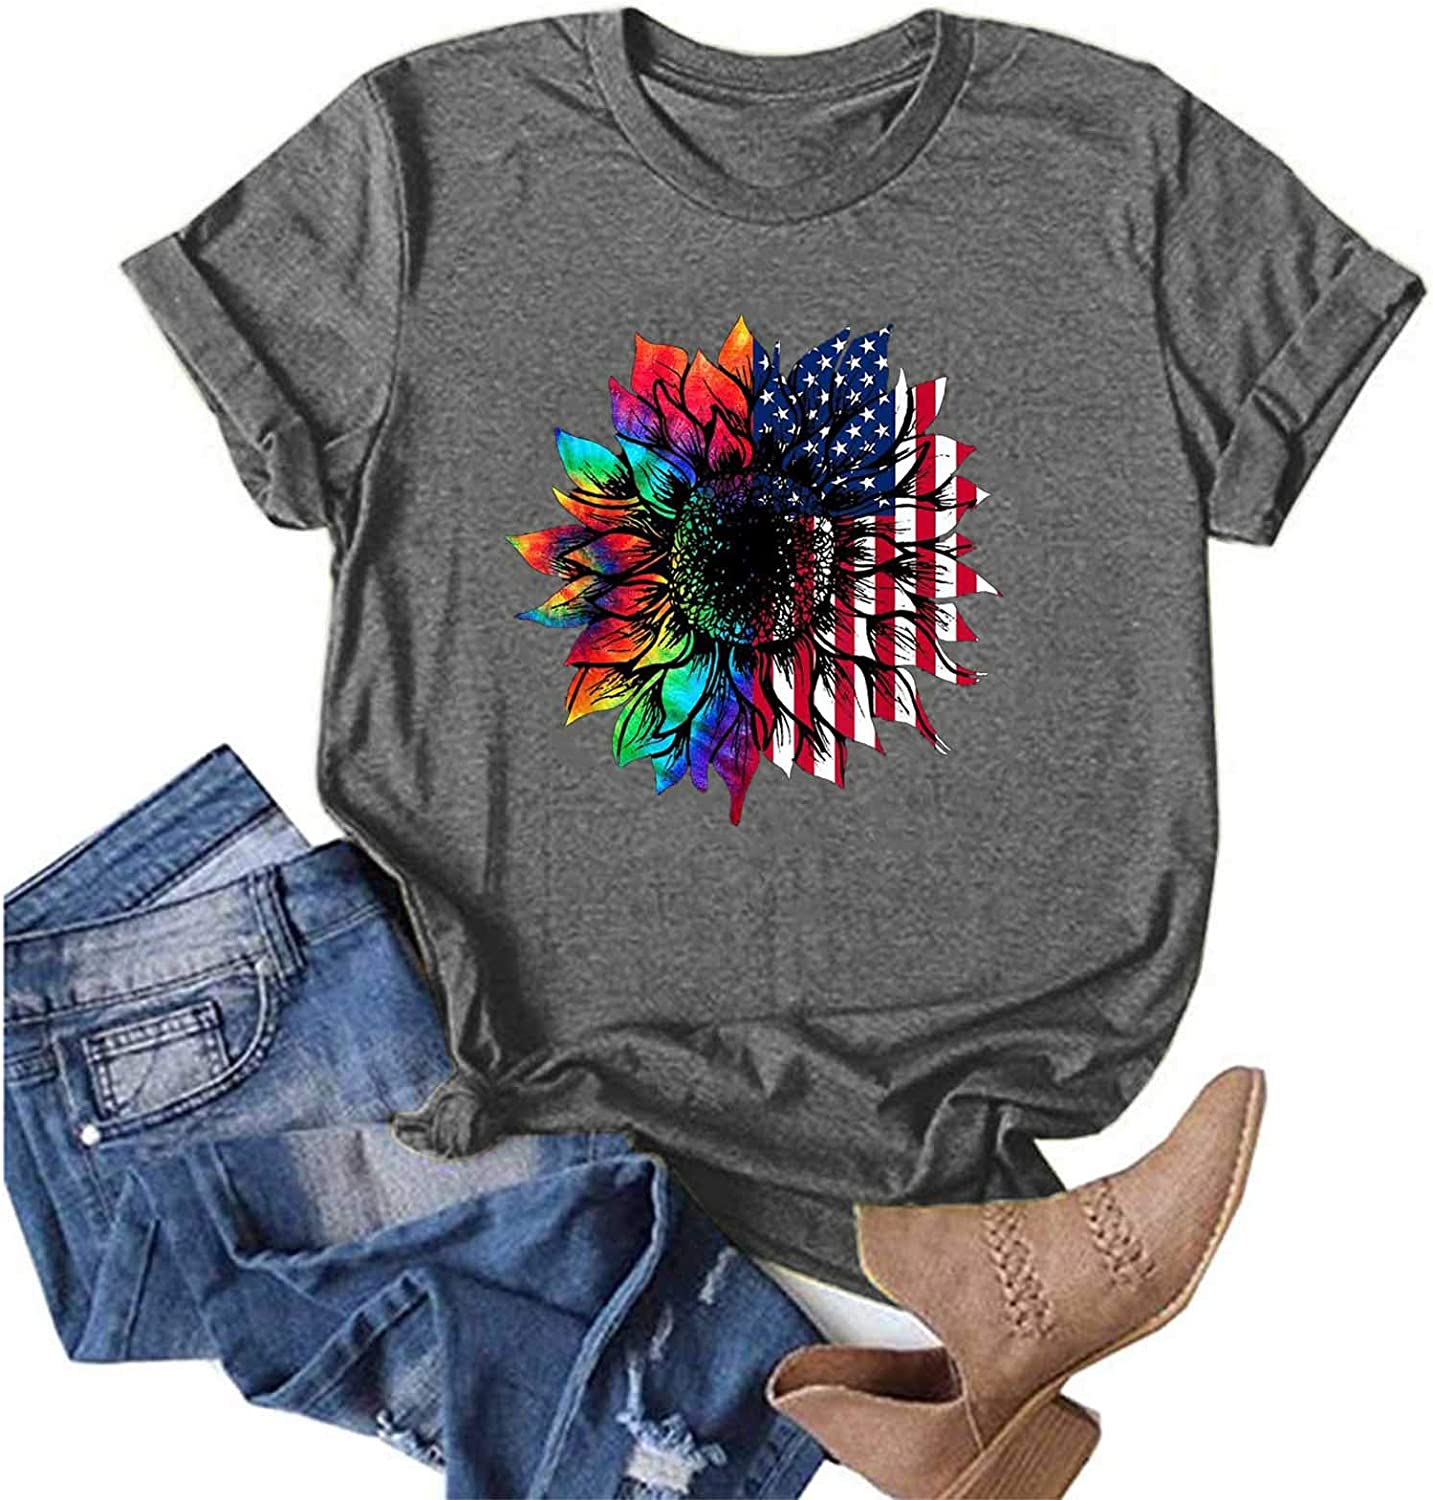 Womens Summer Tops, Womens Casual Blouse Short Sleeve Shirts Loose Fit Tshirt Plus Size Tops Sunflower Painting Tees